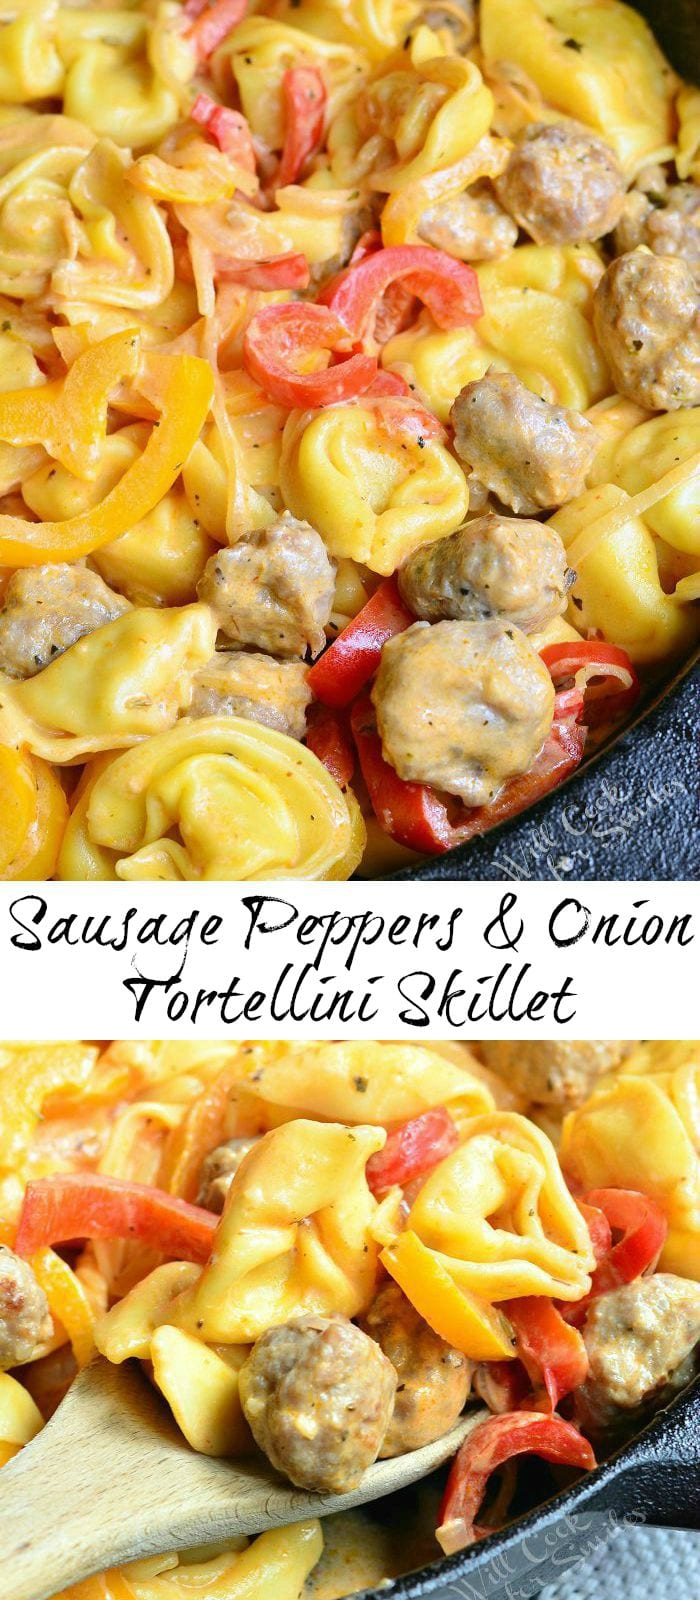 Sausage Peppers and Onion Tortellini Skillet | from willcookforsmiles.com